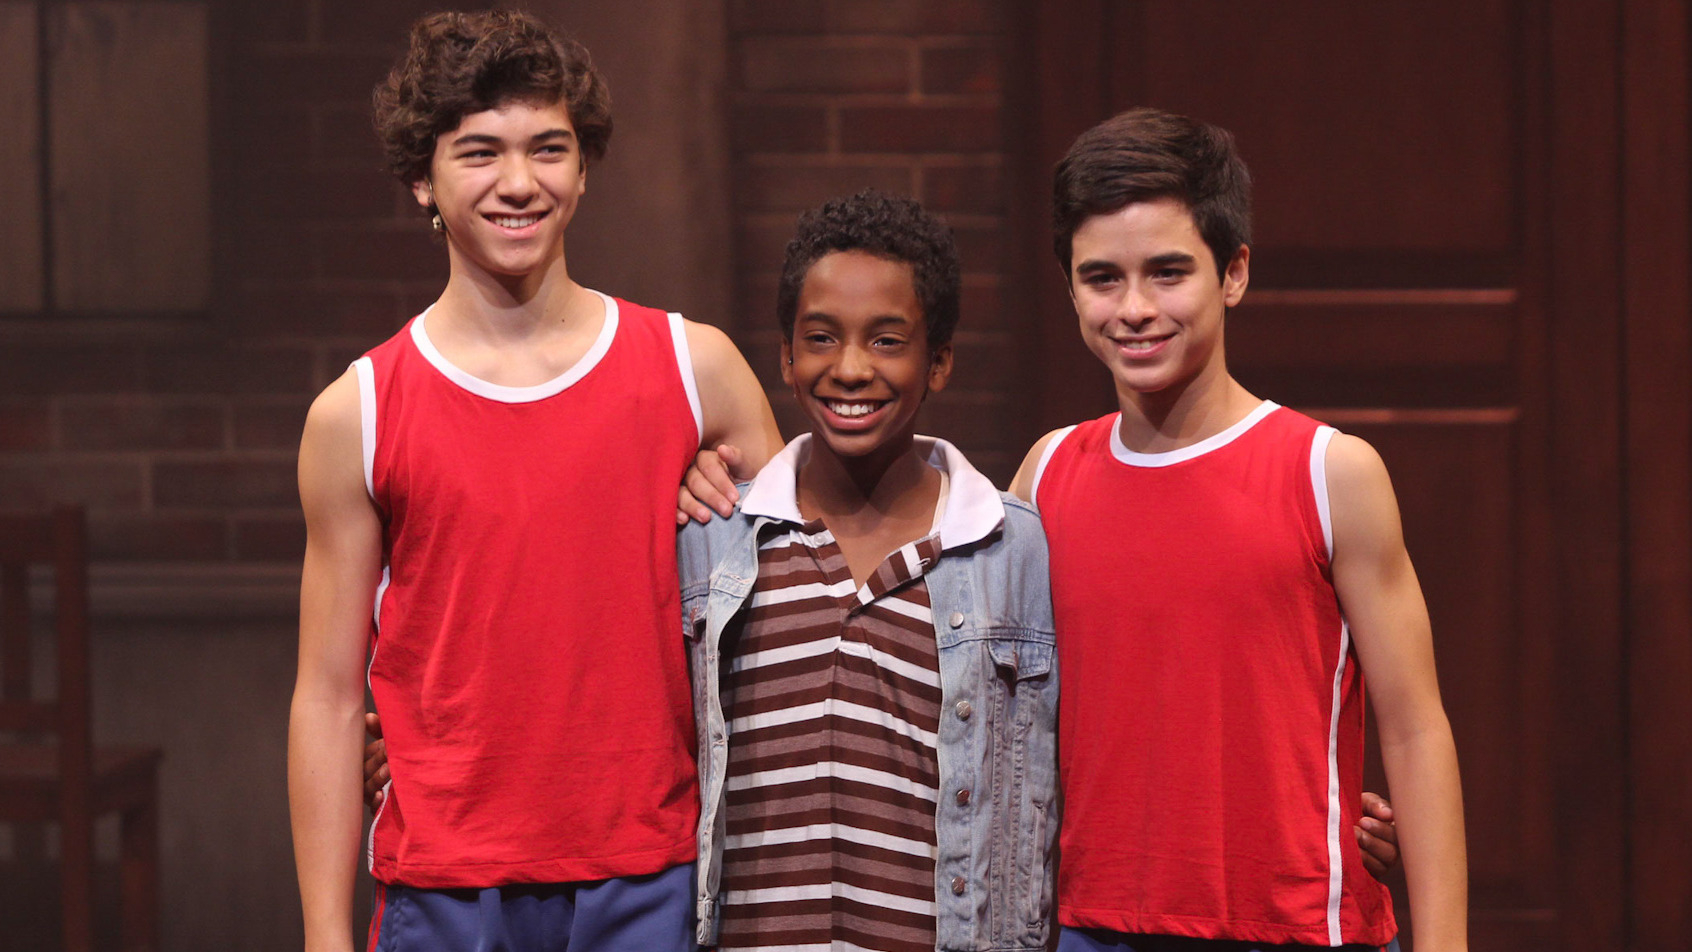 Thiago Vernal, Ray del Castillo y Brando Gallesi interpretan a Billy Elliot.